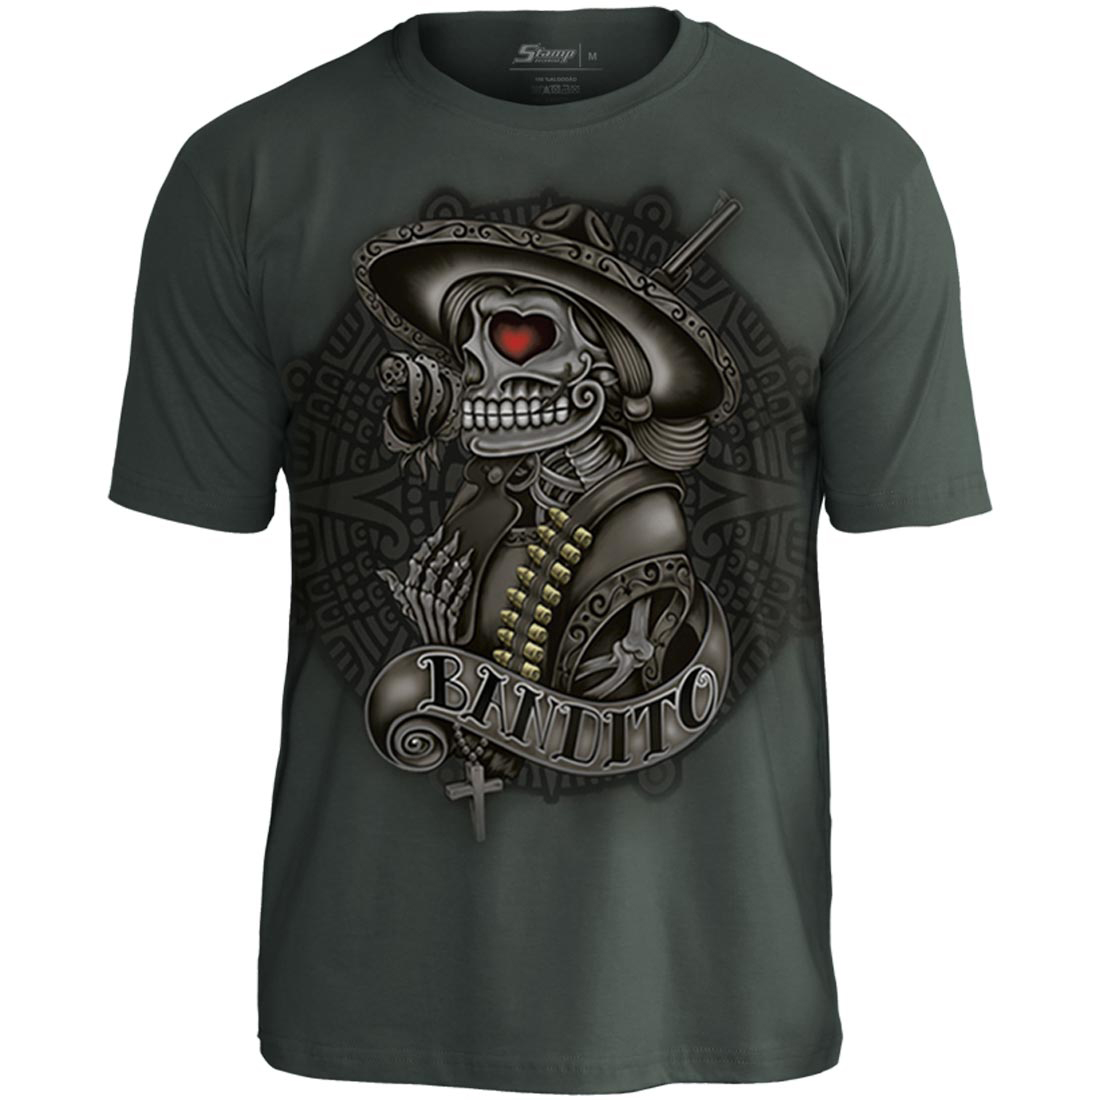 Camiseta Tattoo Bandito